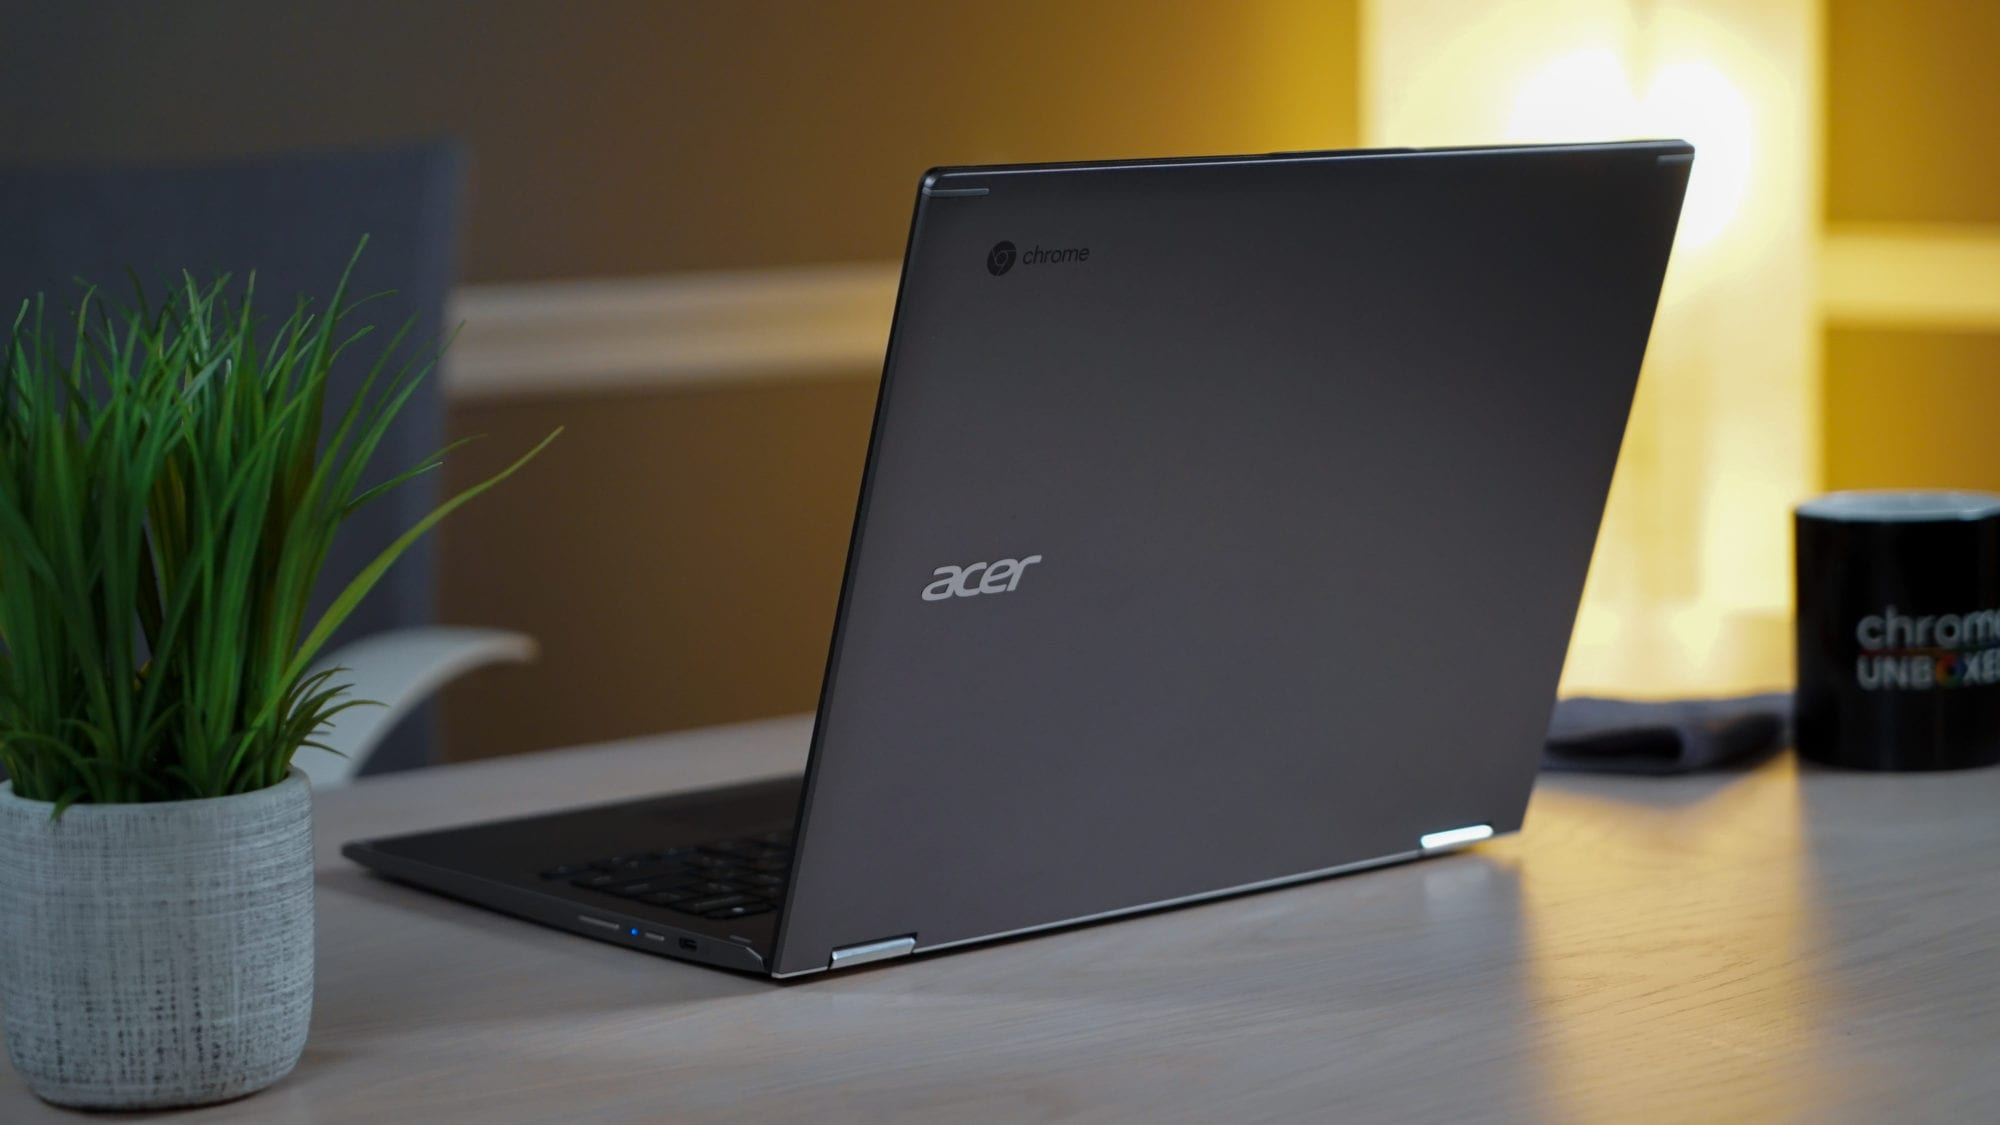 Deal Alert: Get $210 Off The Powerful Acer Chromebook Spin 13